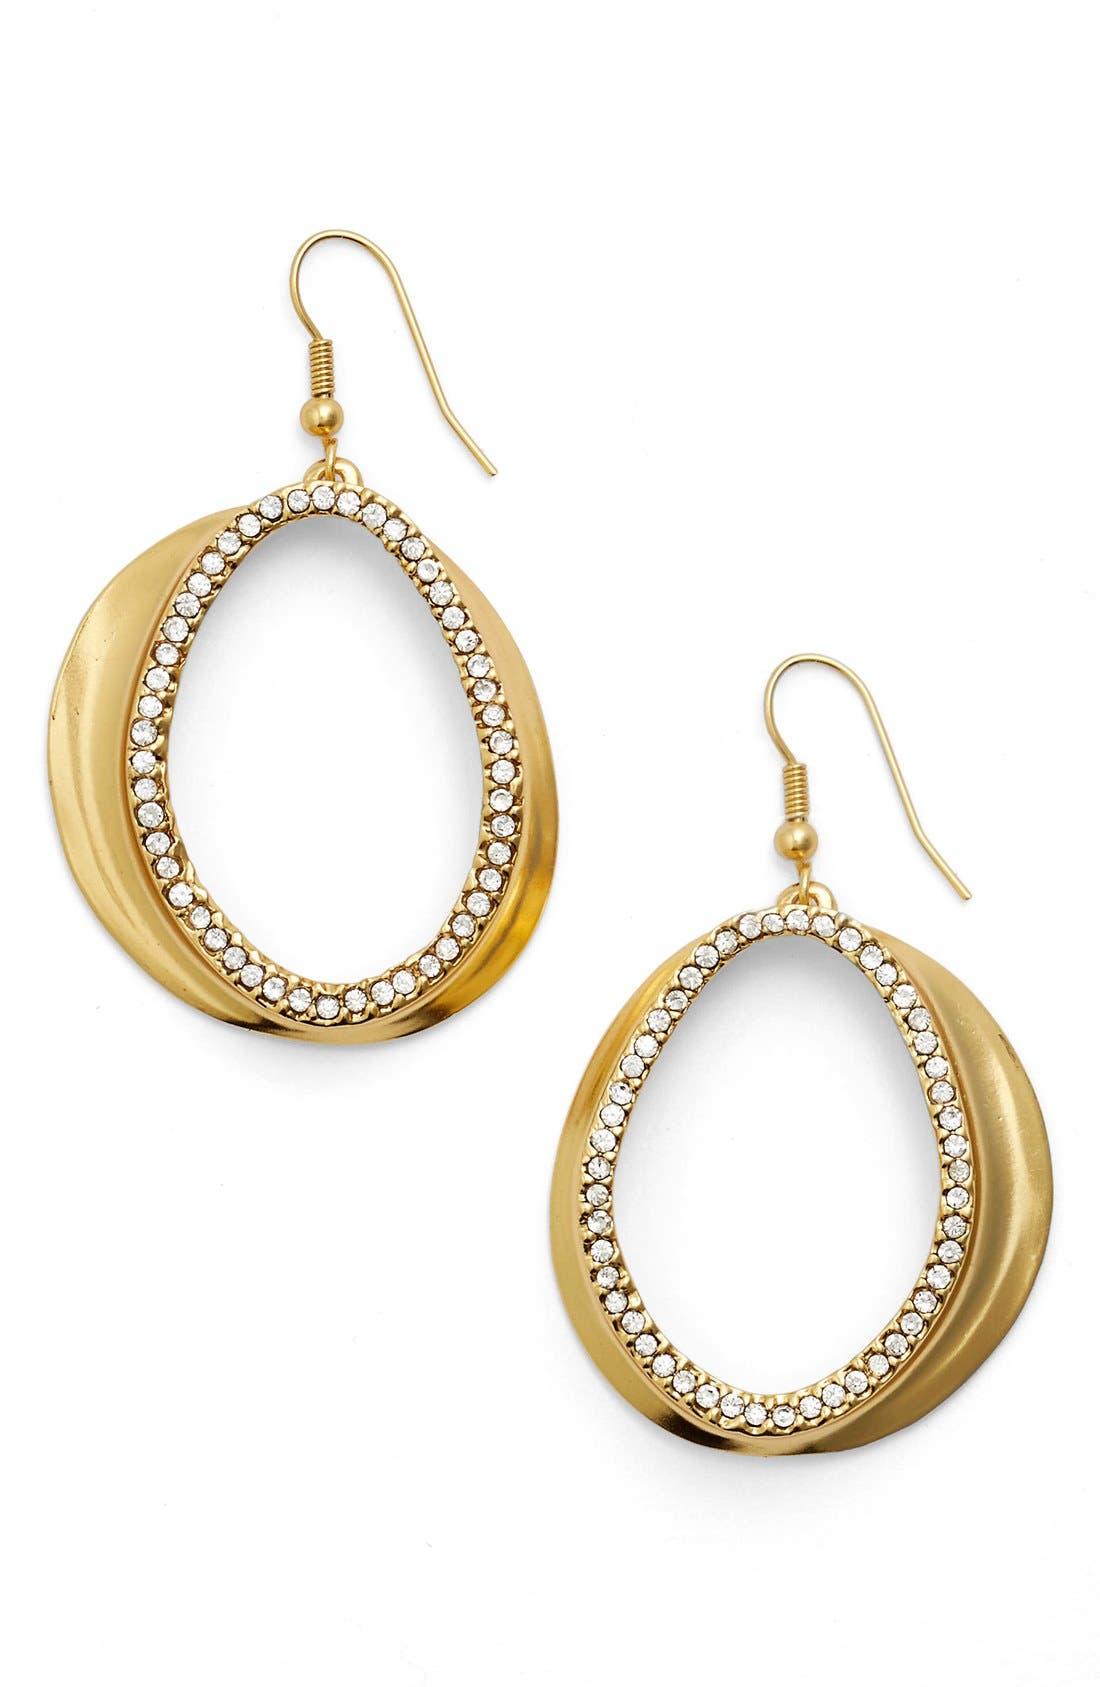 Crystal Front Hoop Earrings,                             Main thumbnail 1, color,                             GOLD